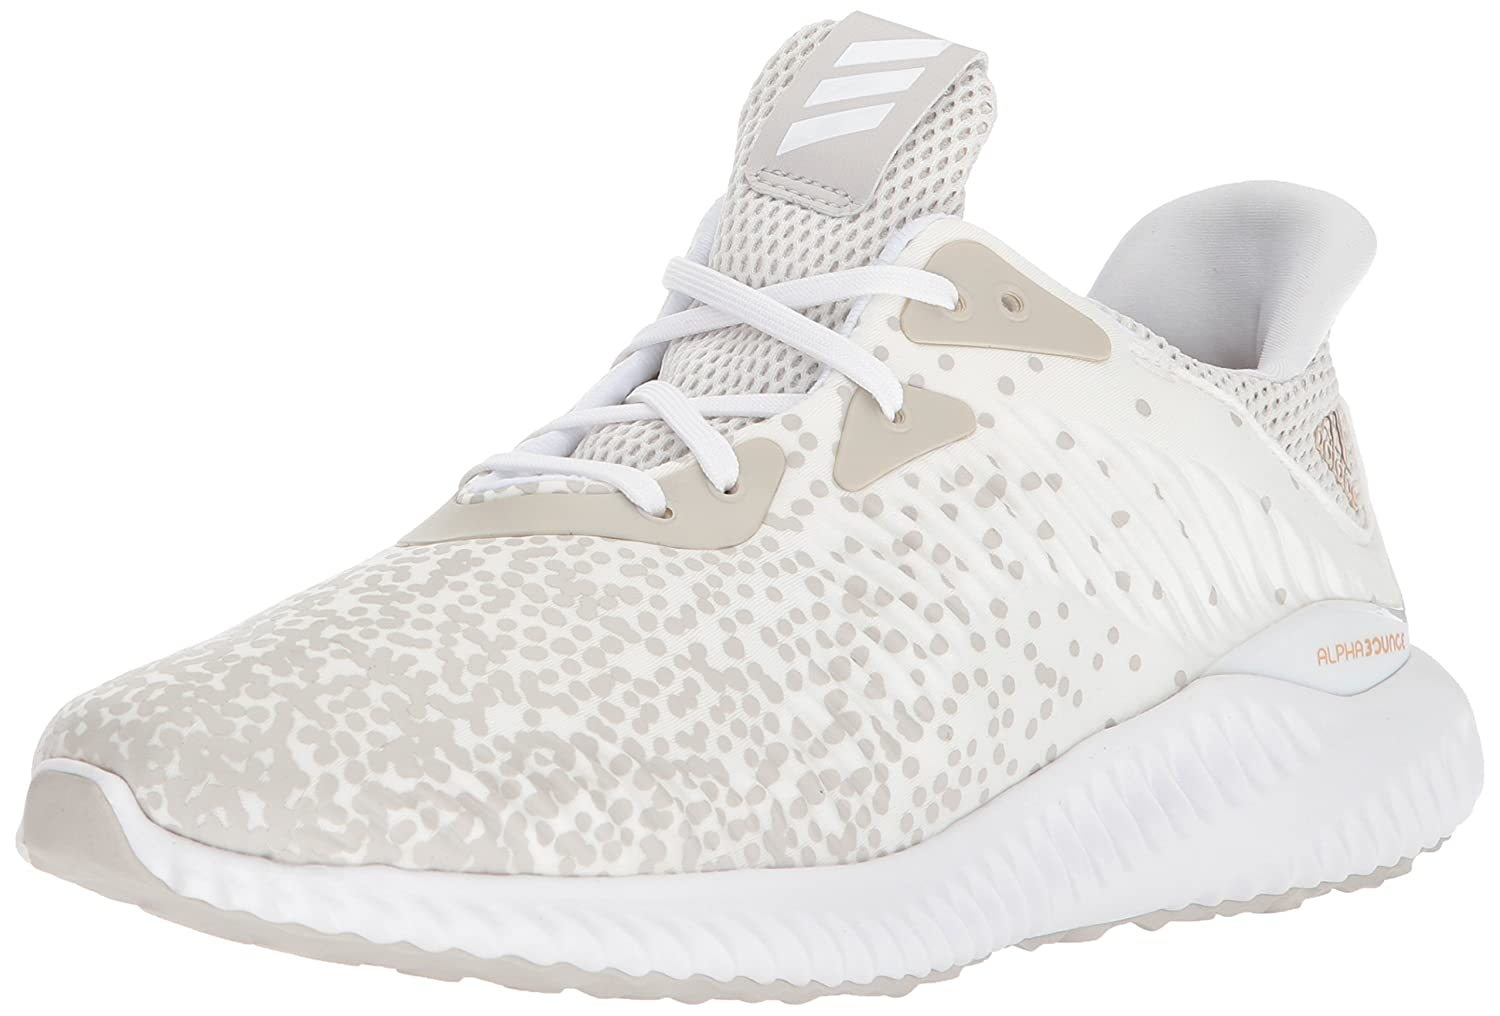 adidas Women's Alphabounce 1 W B071HTLP9H 7 B(M) US|White/White/Grey One